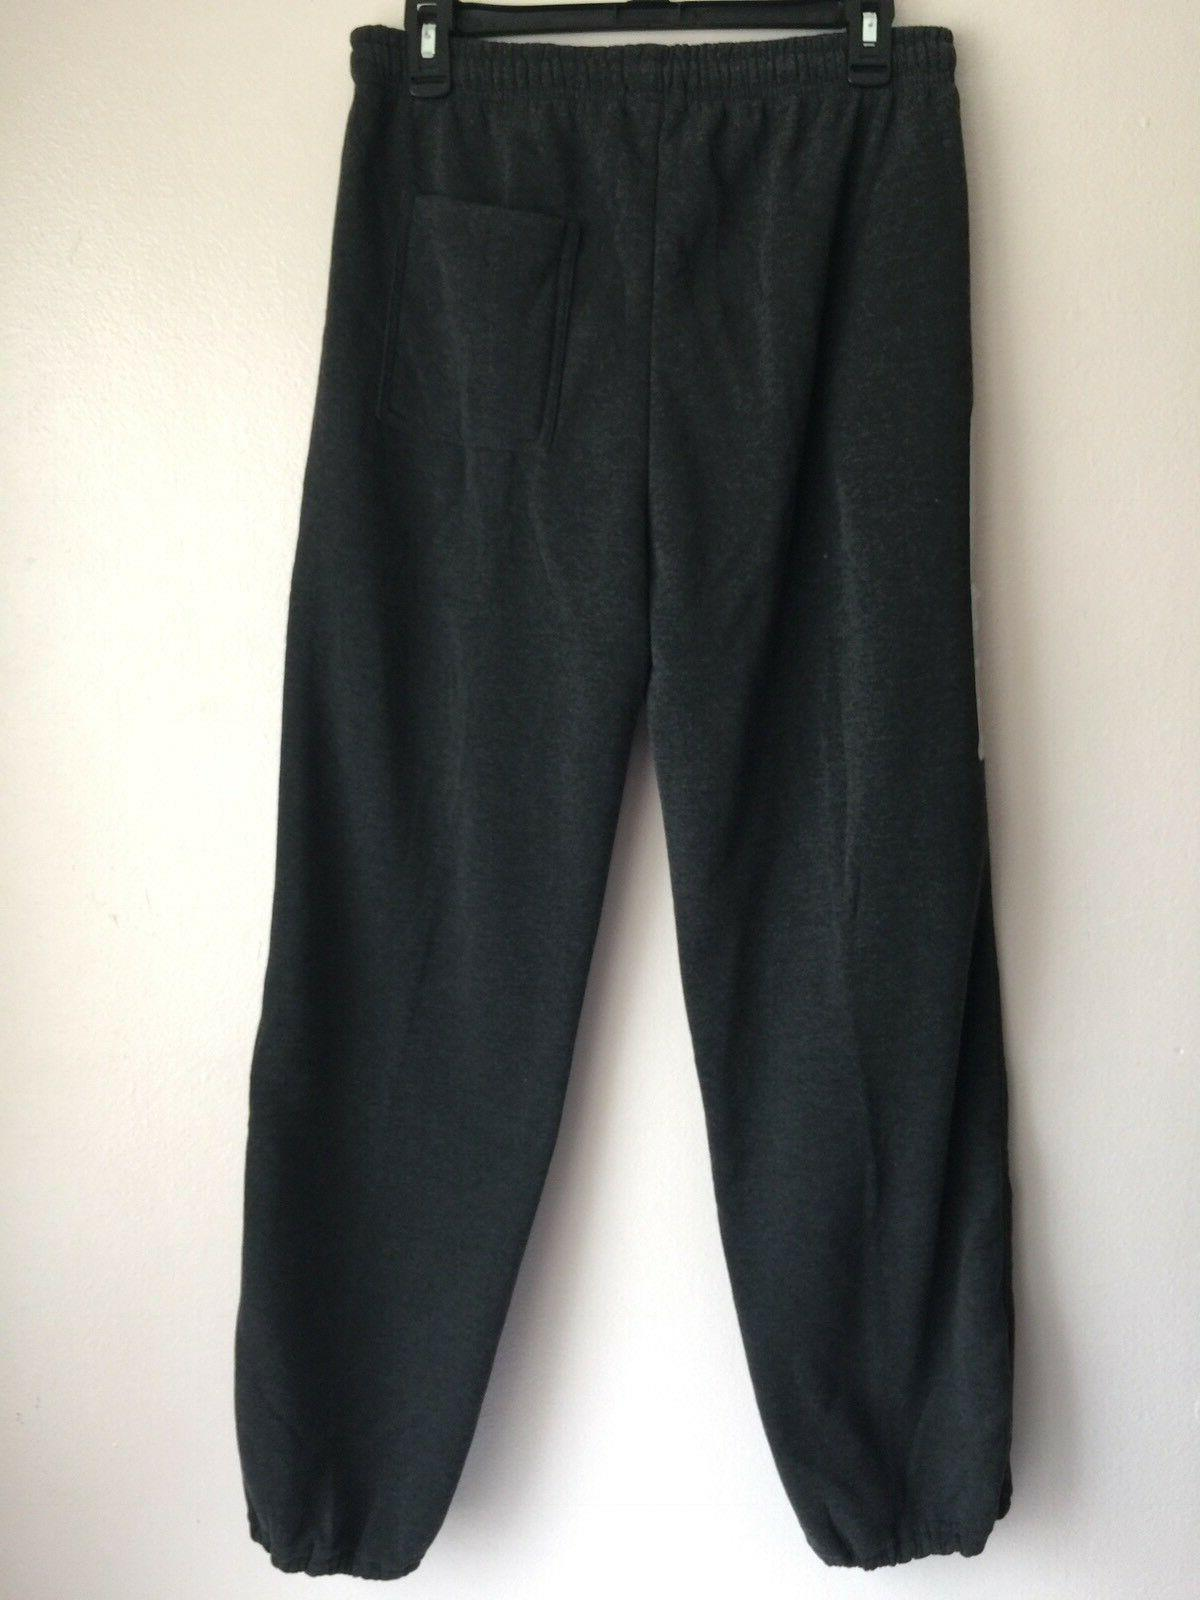 24/7 Mens Sweatpants Size Gray Running Training